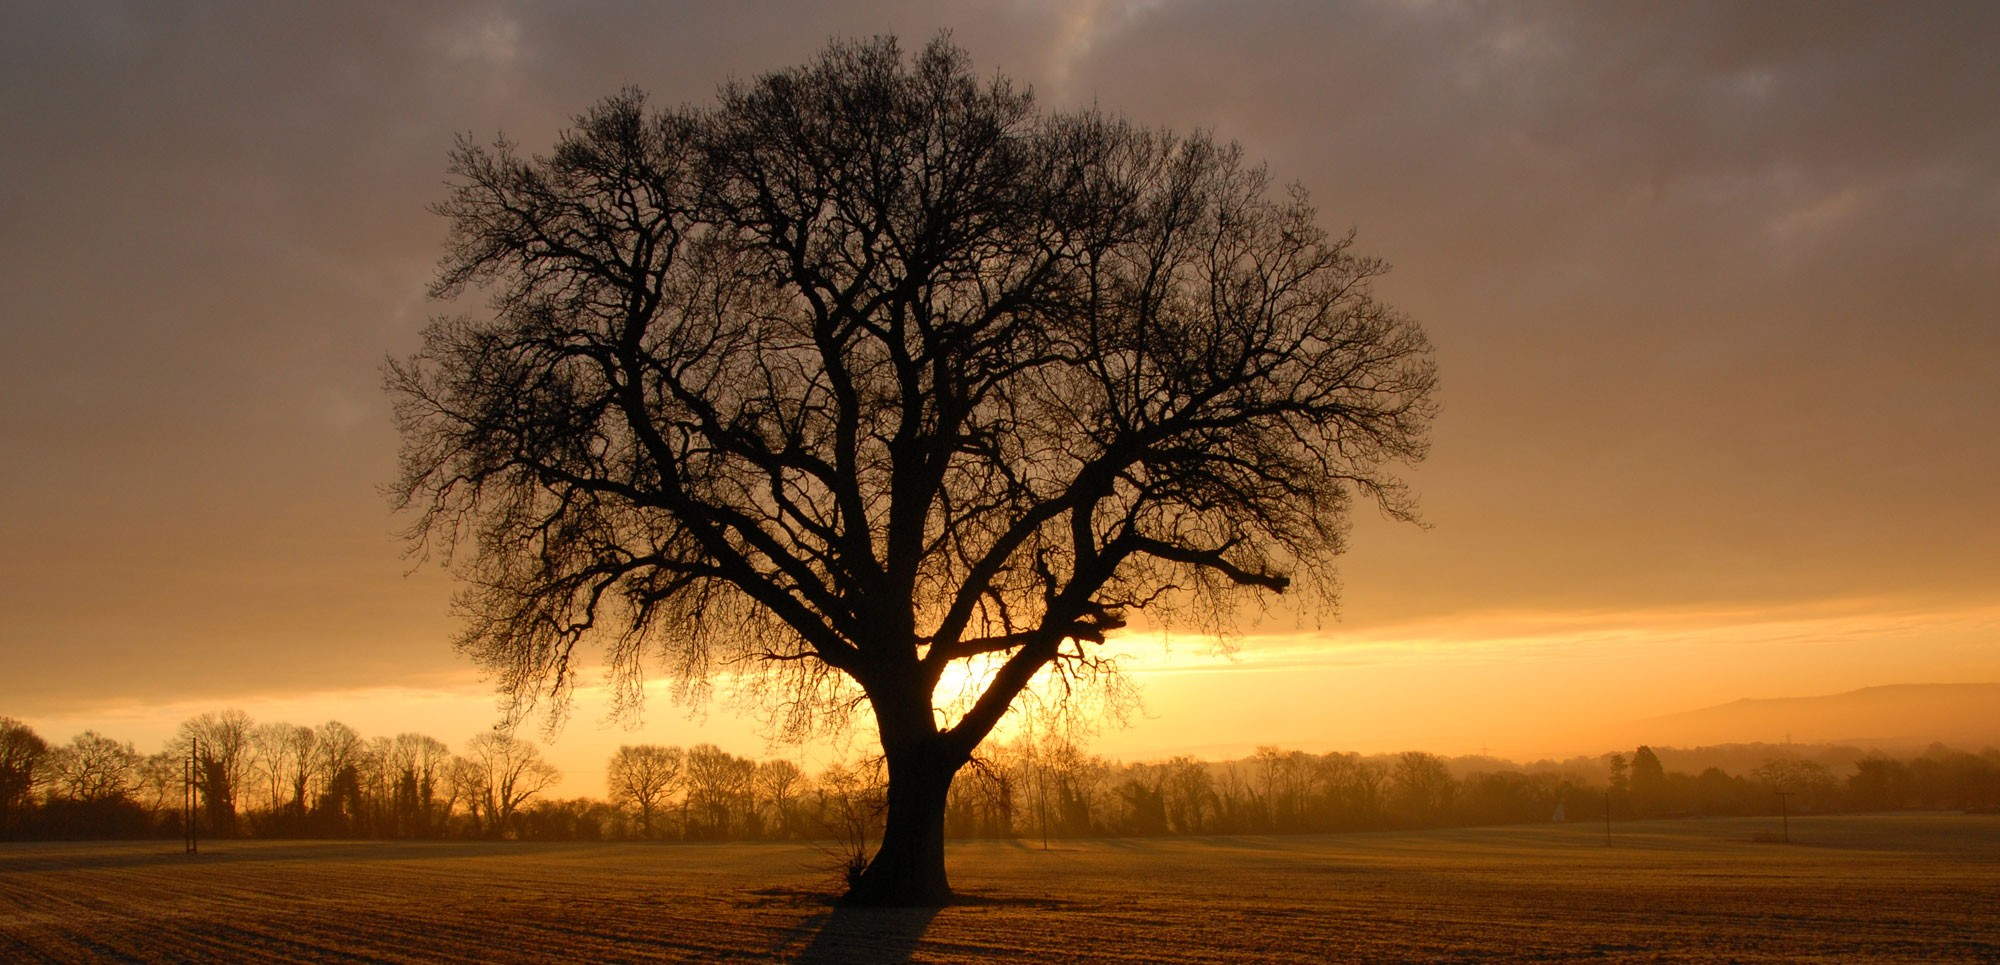 Our oak tree at sunrise